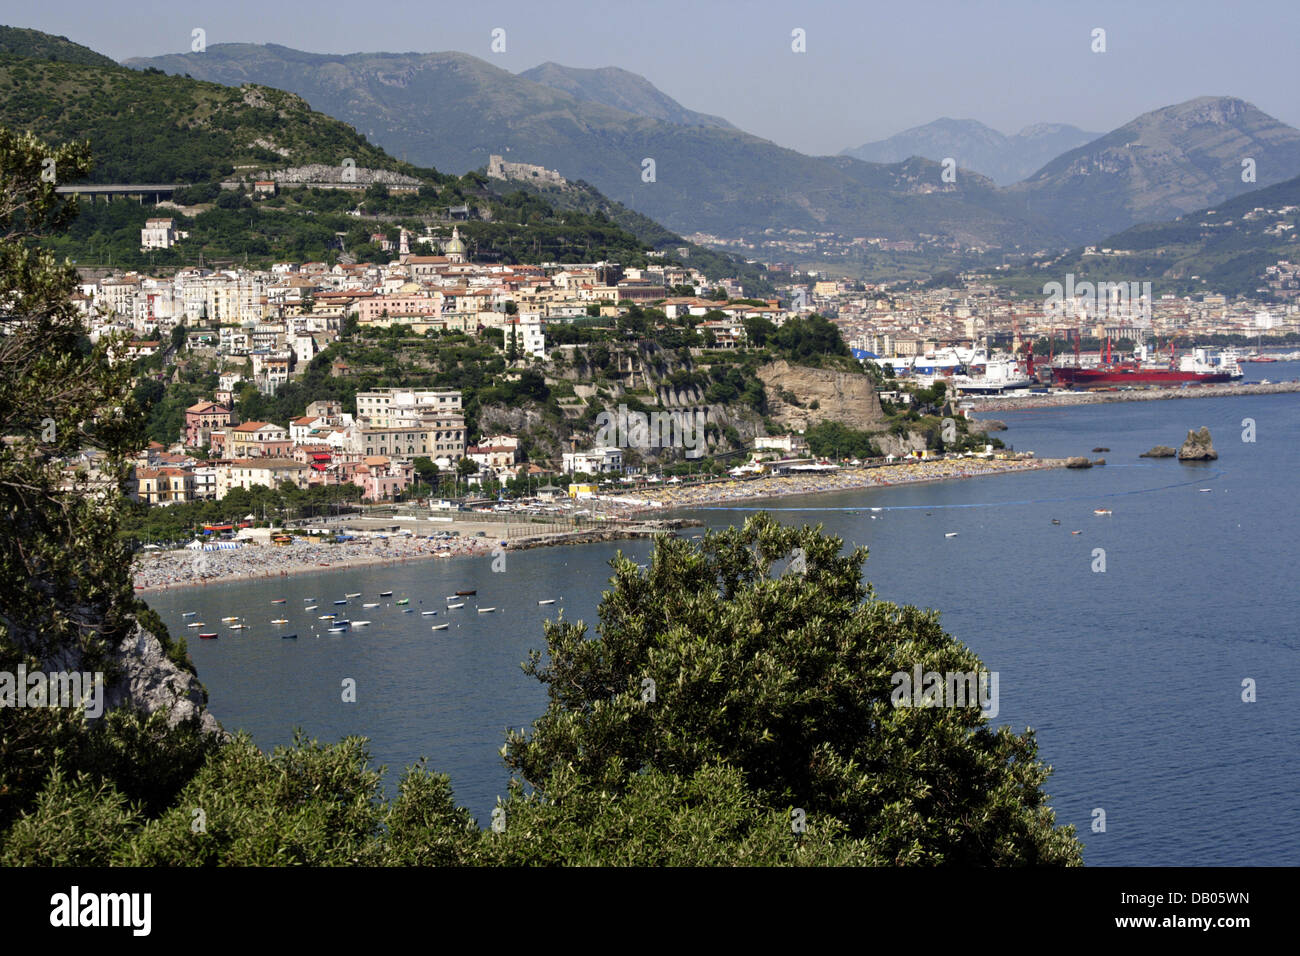 View on Amalfi Coast town Vietri sul mare, Italy, 18 June 2007. Photo: Lars Halbauer Stock Photo